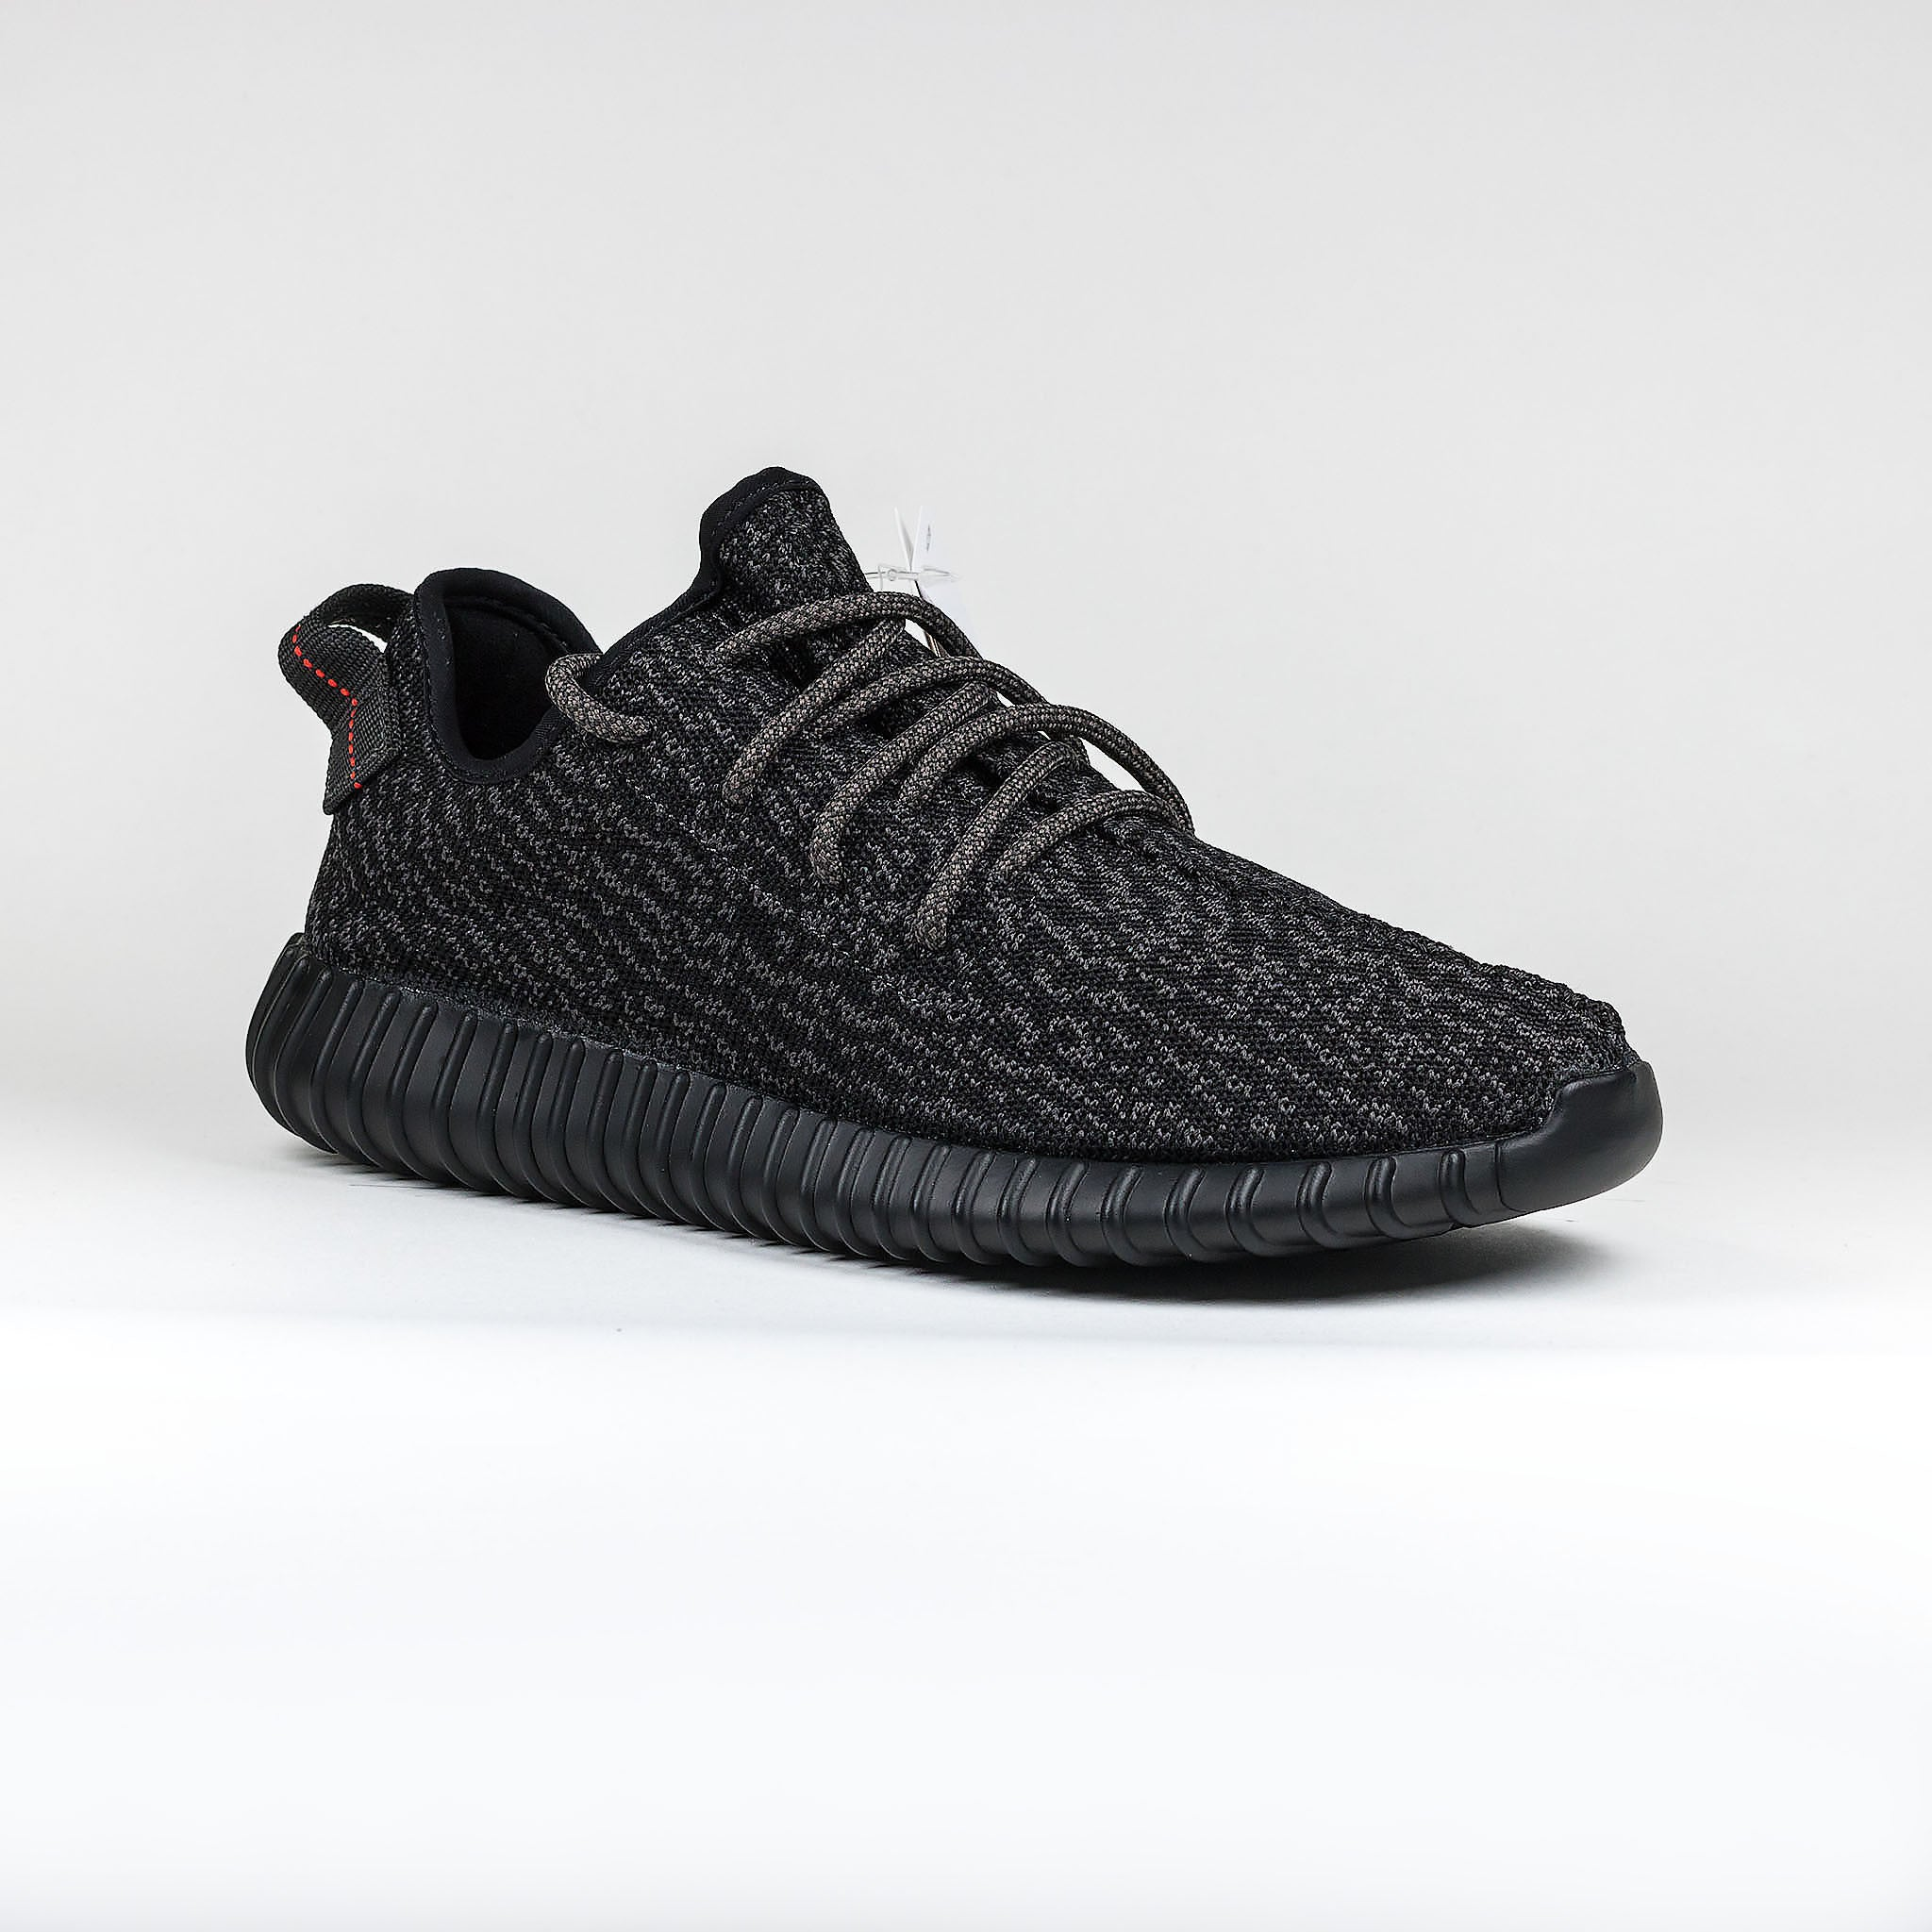 8b544af4d Yeezy Boost 350 V1 1.0 2015 Pirate Black – Crepslocker